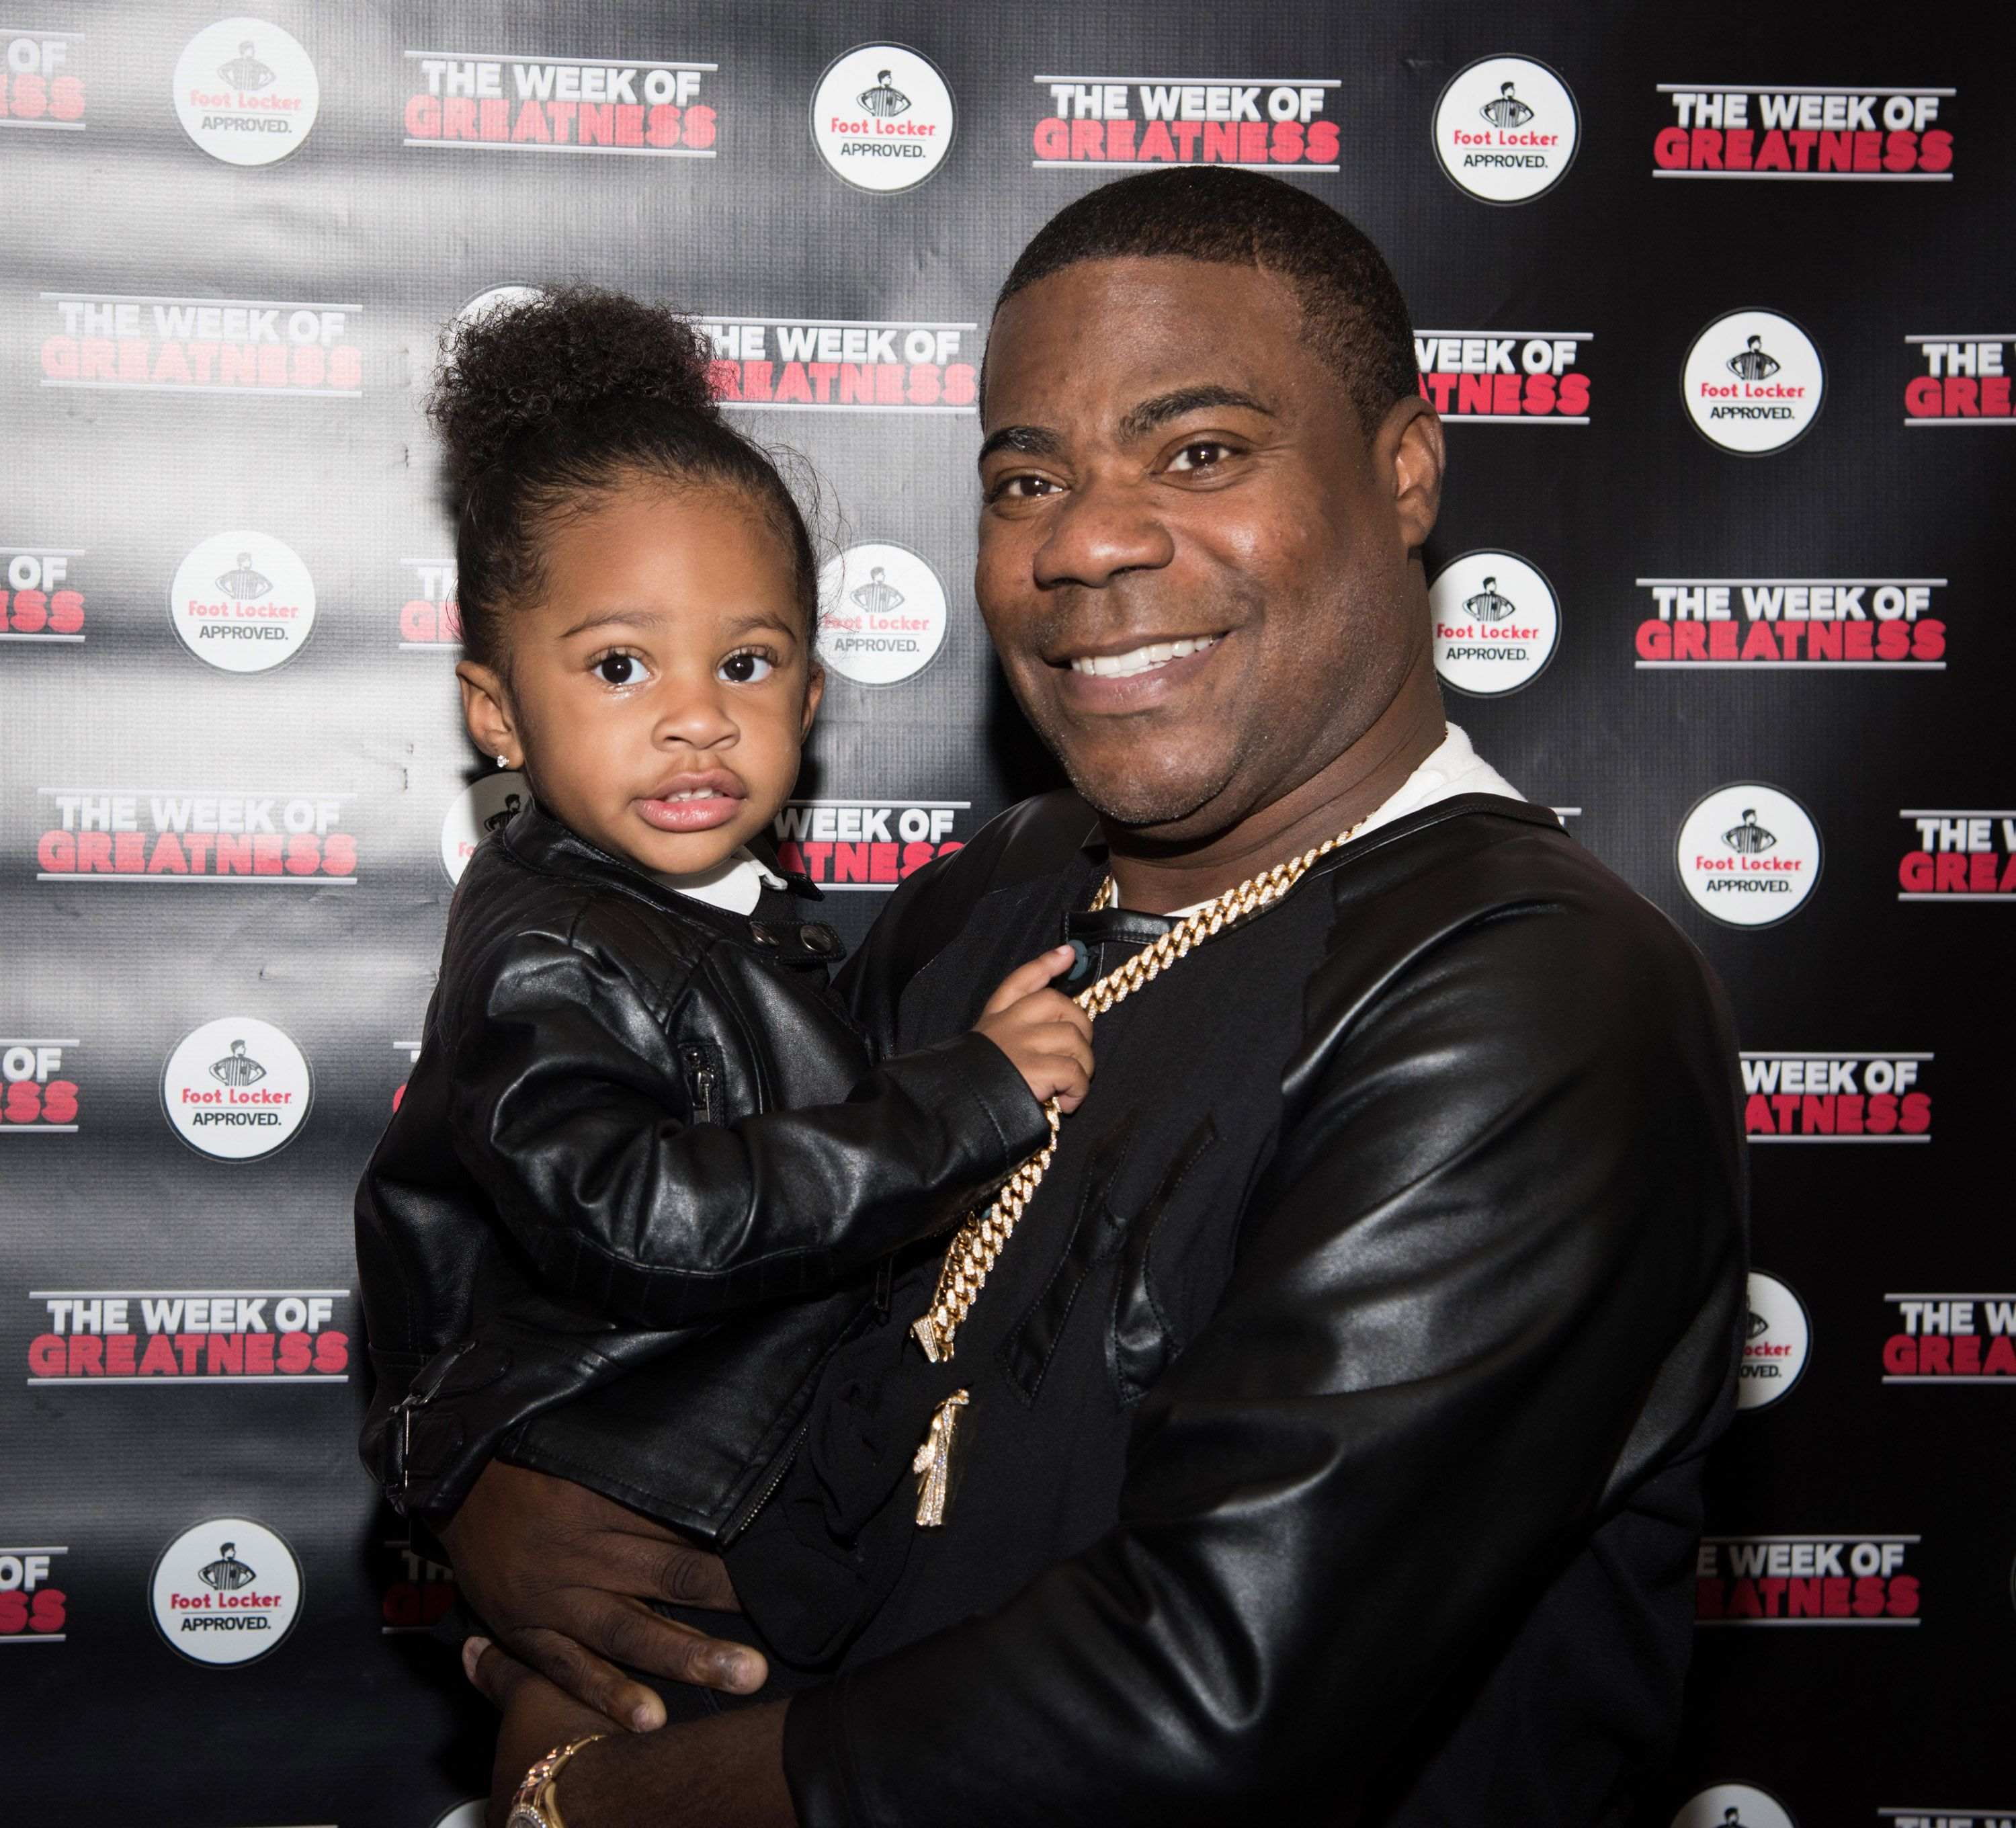 Tracy Morgan and daughter Maven at the Fourth Annual Week Of Greatness Kick Off Event in 2015 in New York City | Source: Getty Images